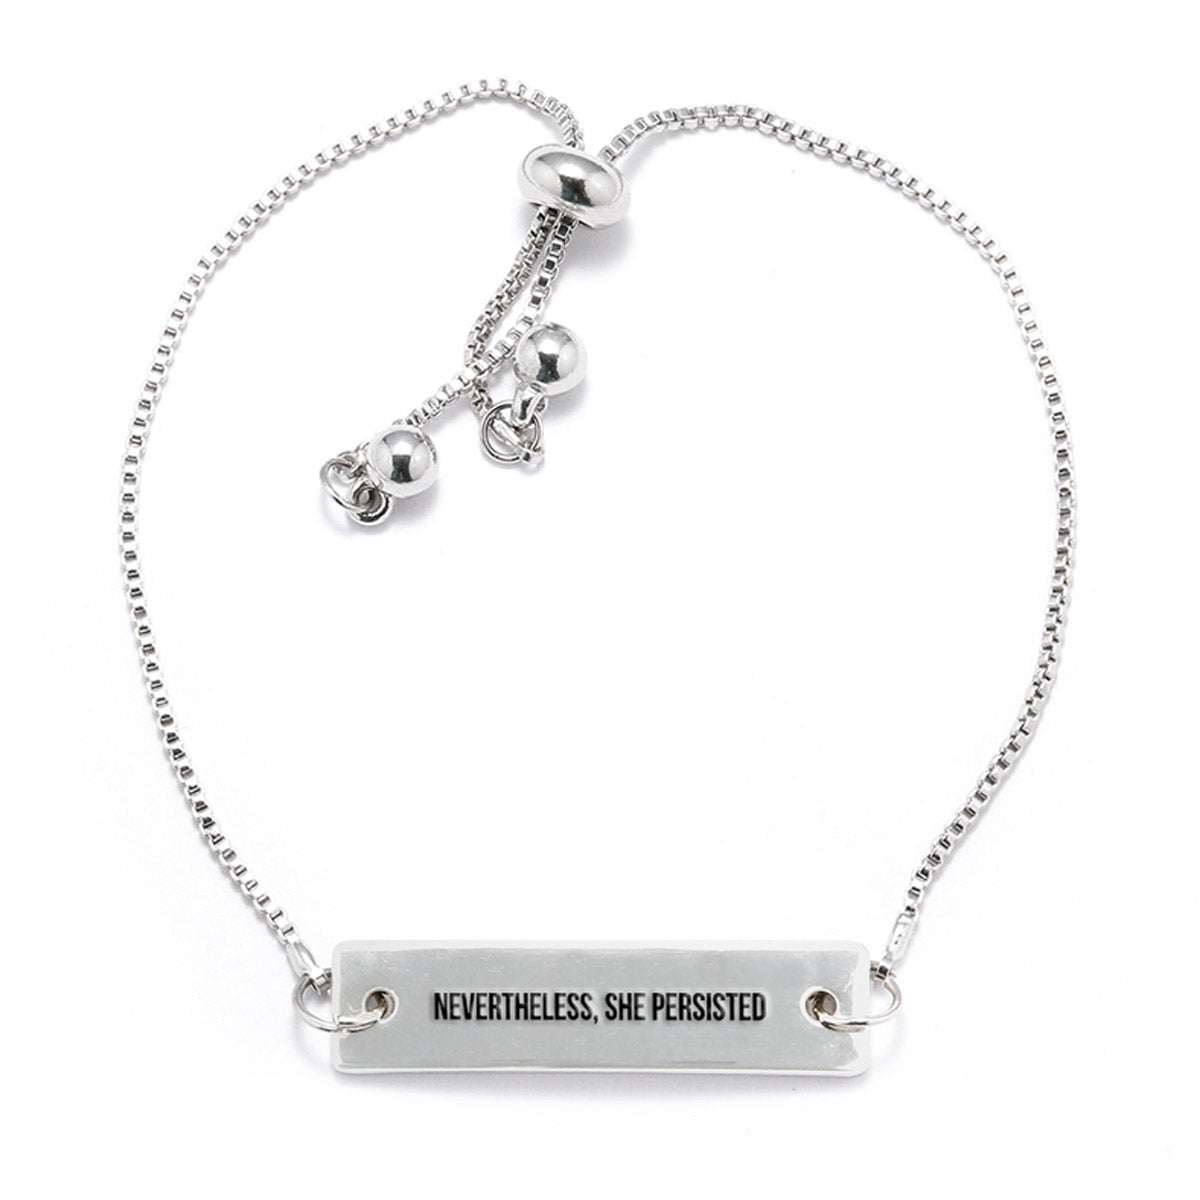 Nevertheless, She Persisted Silver Bar Adjustable Bracelet